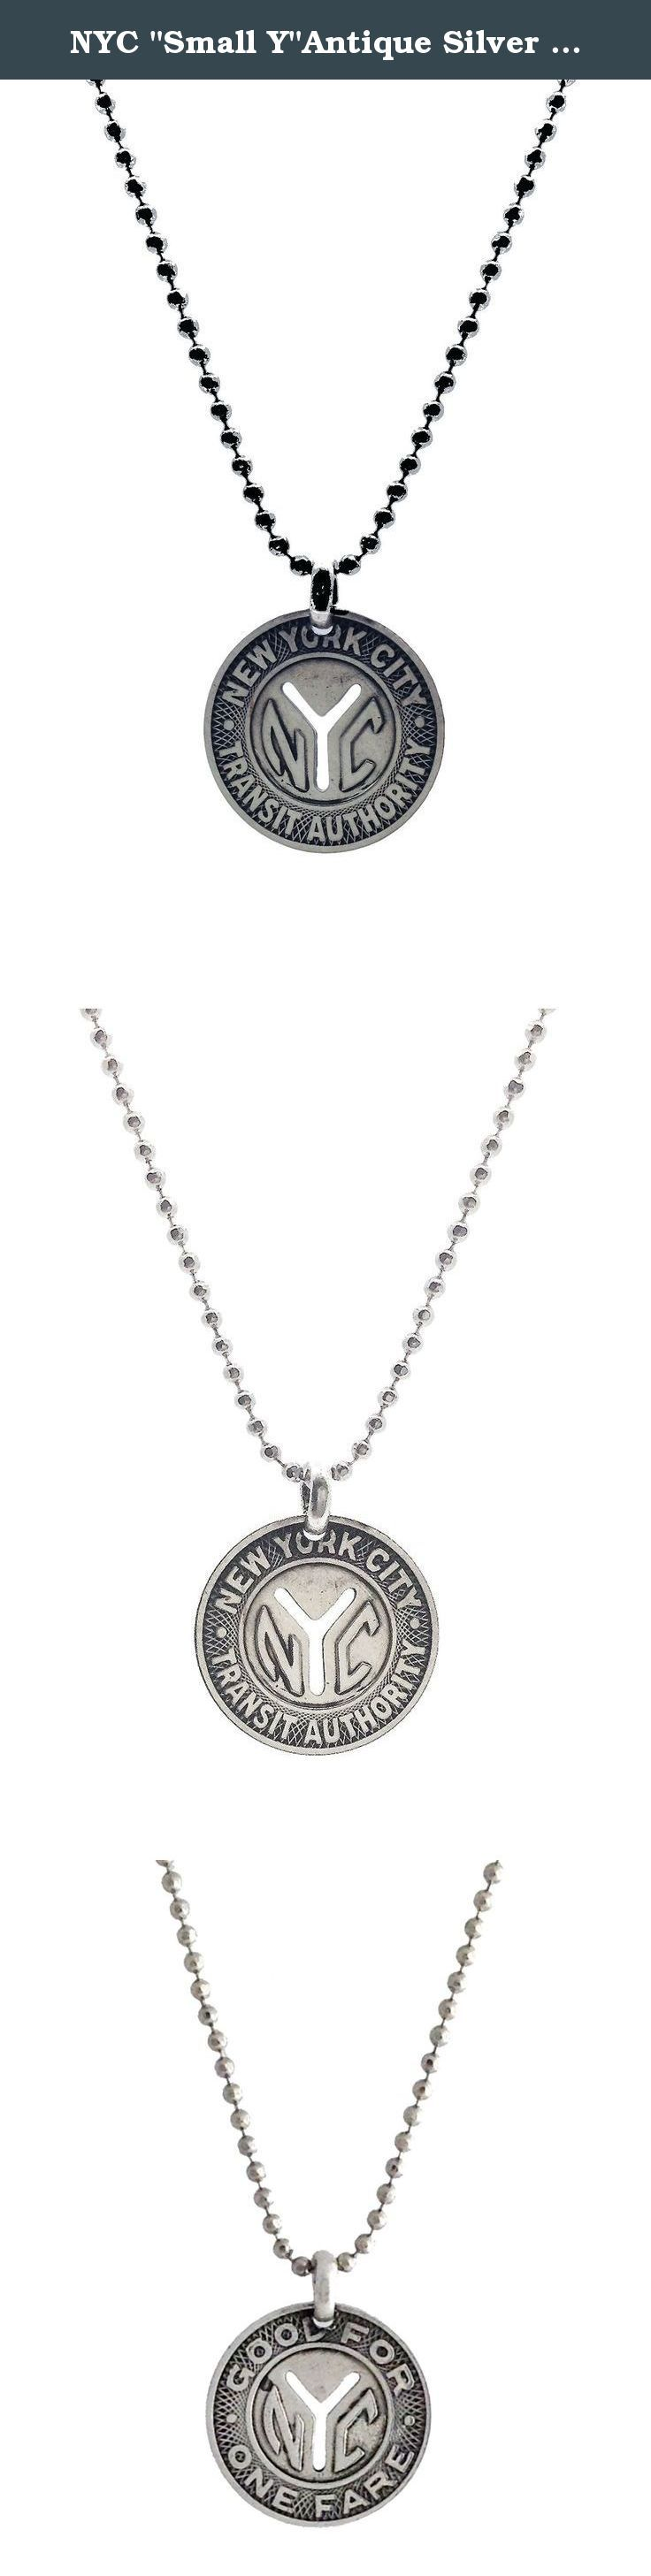 """NYC """"Small Y""""Antique Silver Plated Plated Subway Token Necklace with Ball Chain (32 Inches). The NYC subway token is the quintessential symbol of NYC. The """"Small Y"""" token was the first in a series of six tokens used in the NYC subway system and was in use between 1953 and 1970. It was the longest running token, and its design is possibly the most iconic and recognizable symbol of NYC. It measures 15mm, about the size of dime. An organic and harmonious design with every detail taken into..."""